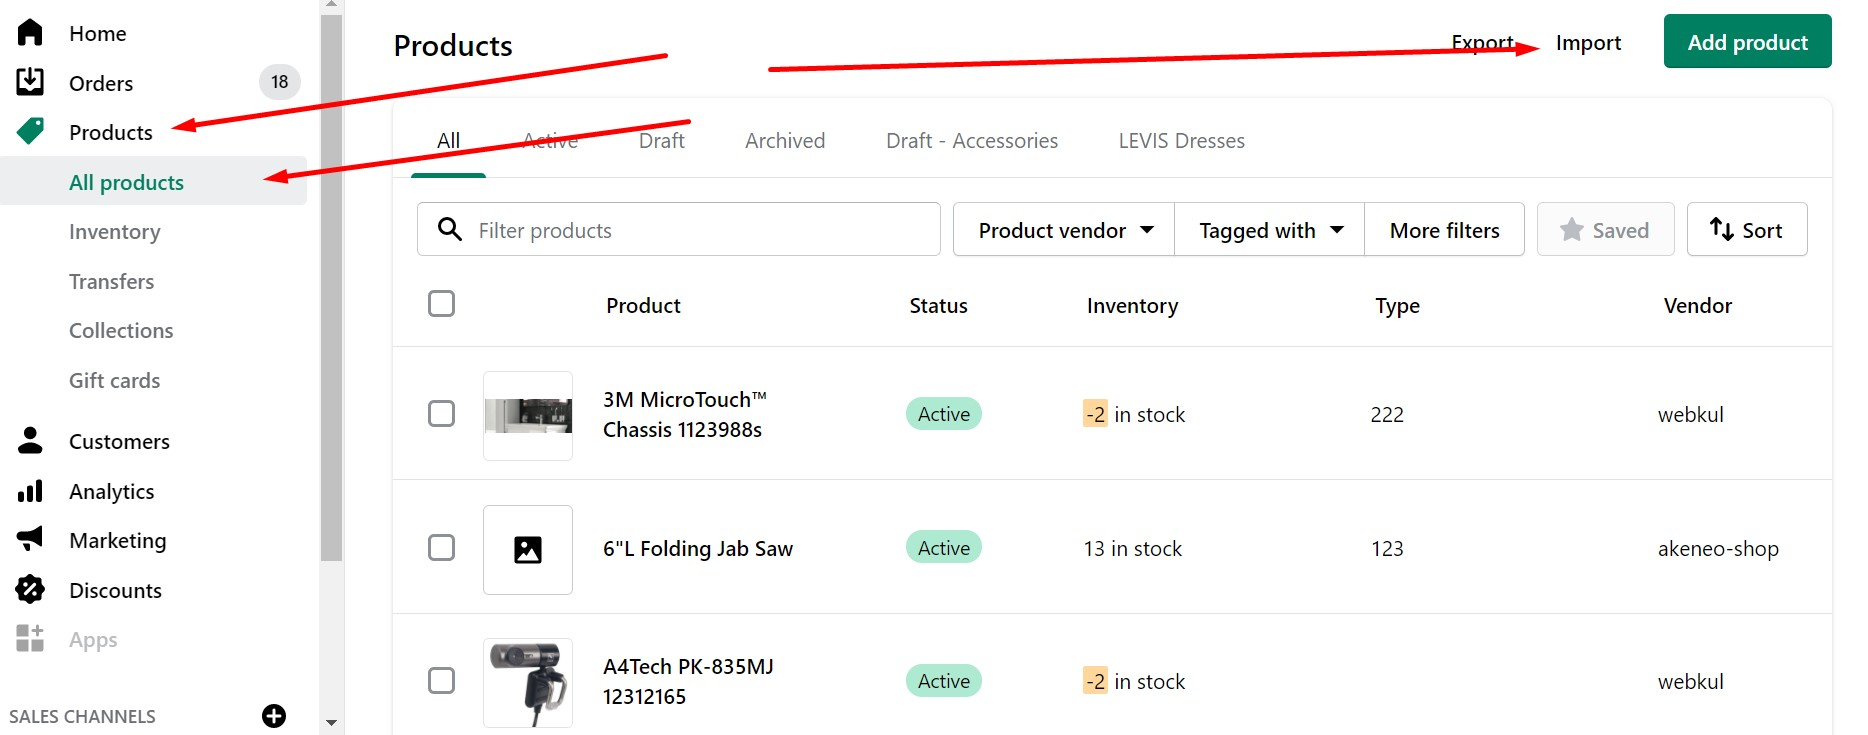 Shopify Import Guide